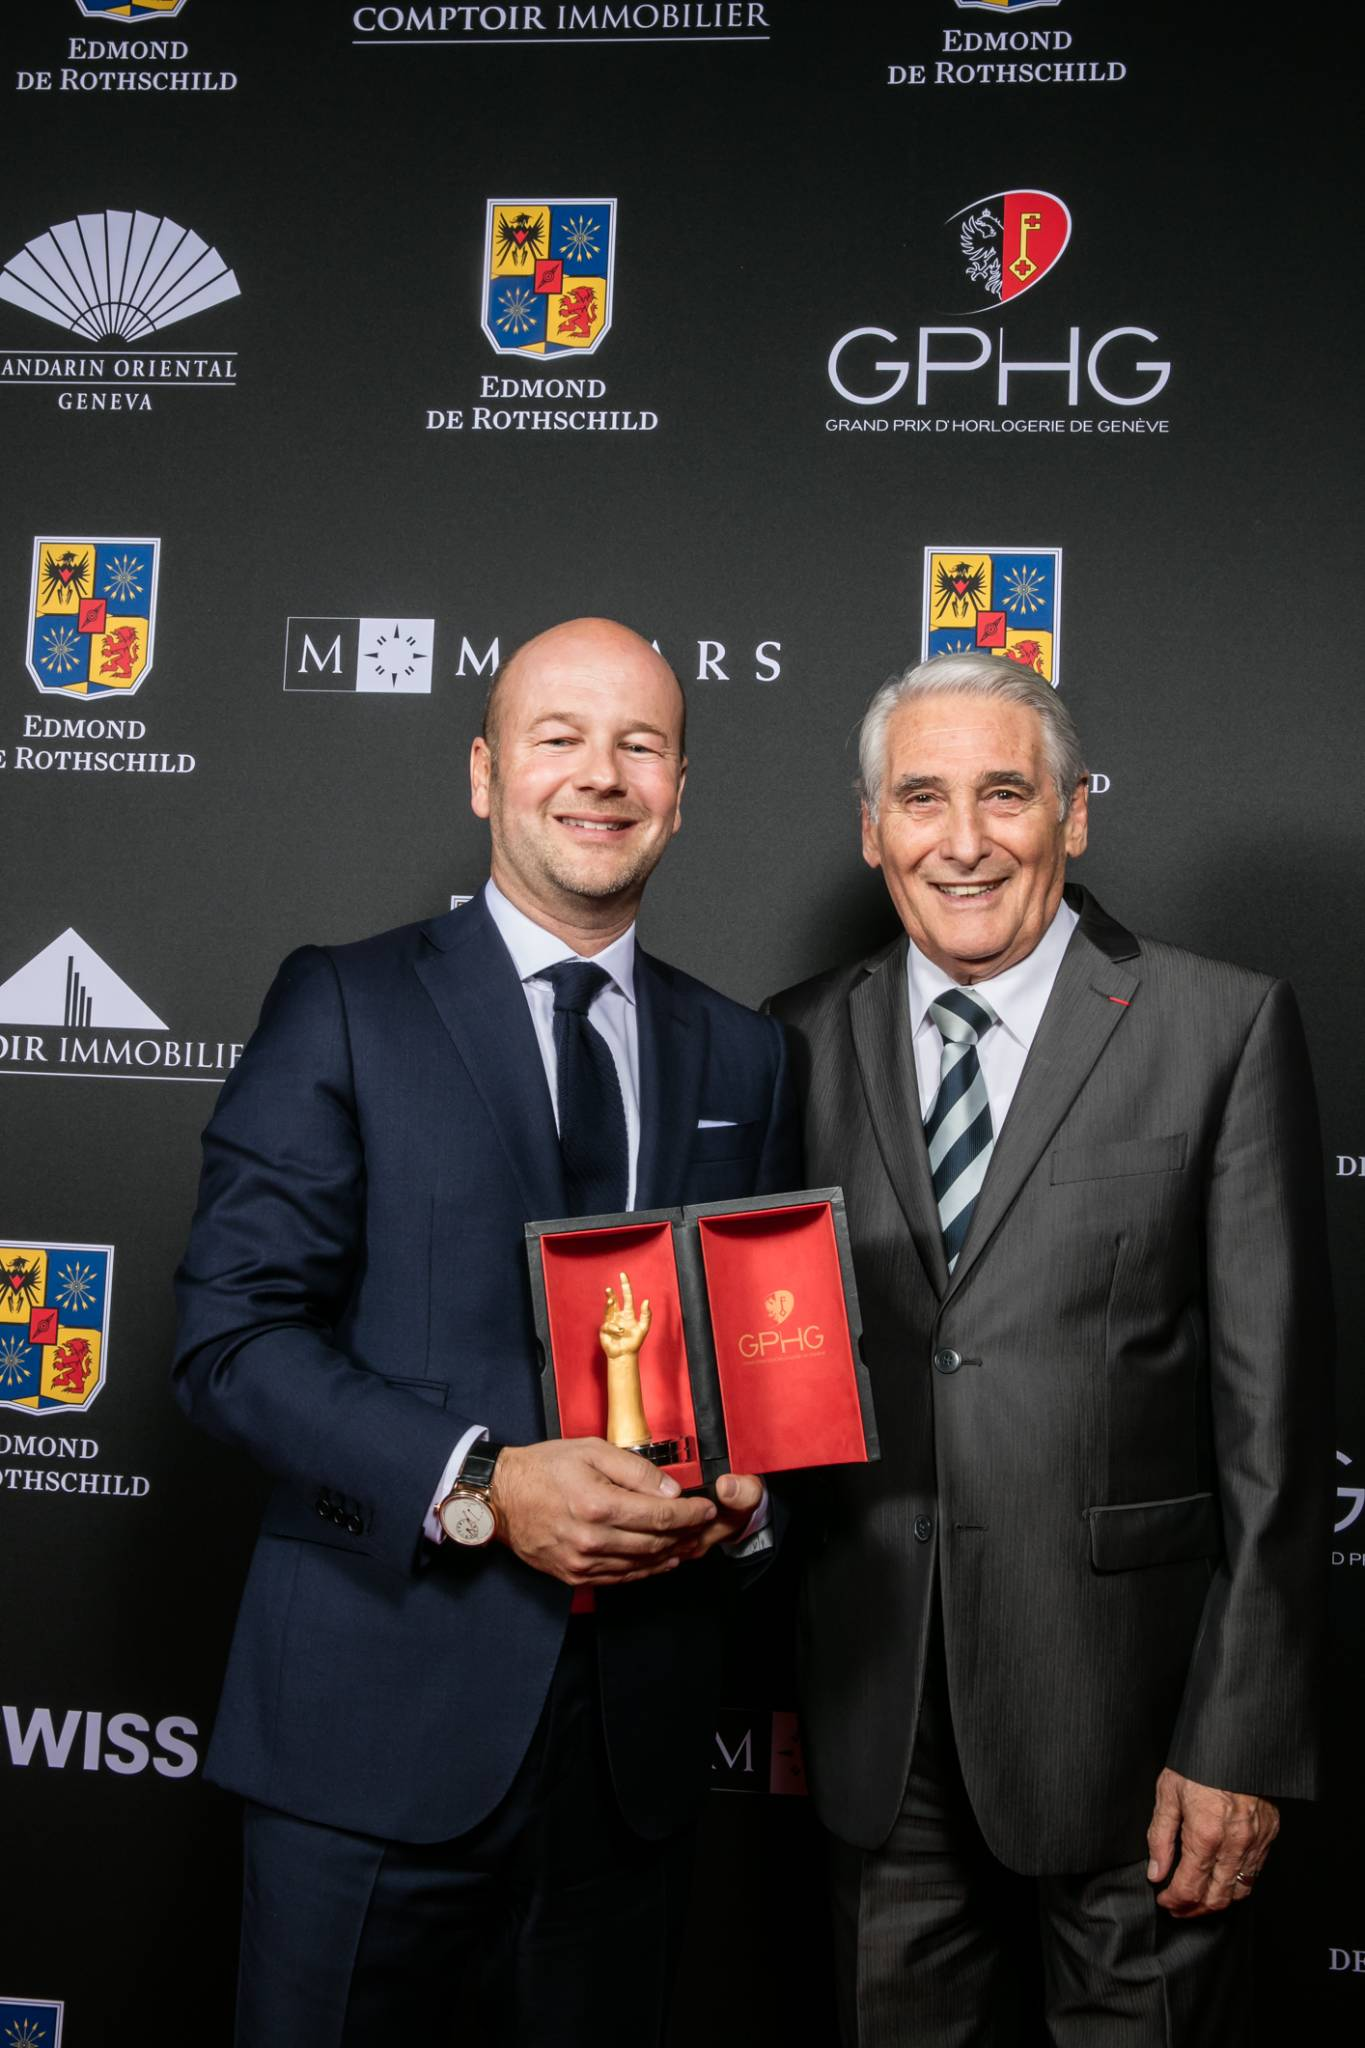 Christian Lattmann (Senior Executive Vice President of Jaquet Droz, winner of the Mechanical Exception Watch Prize 2015) and Carlo Lamprecht (President of the Foundation of the GPHG)